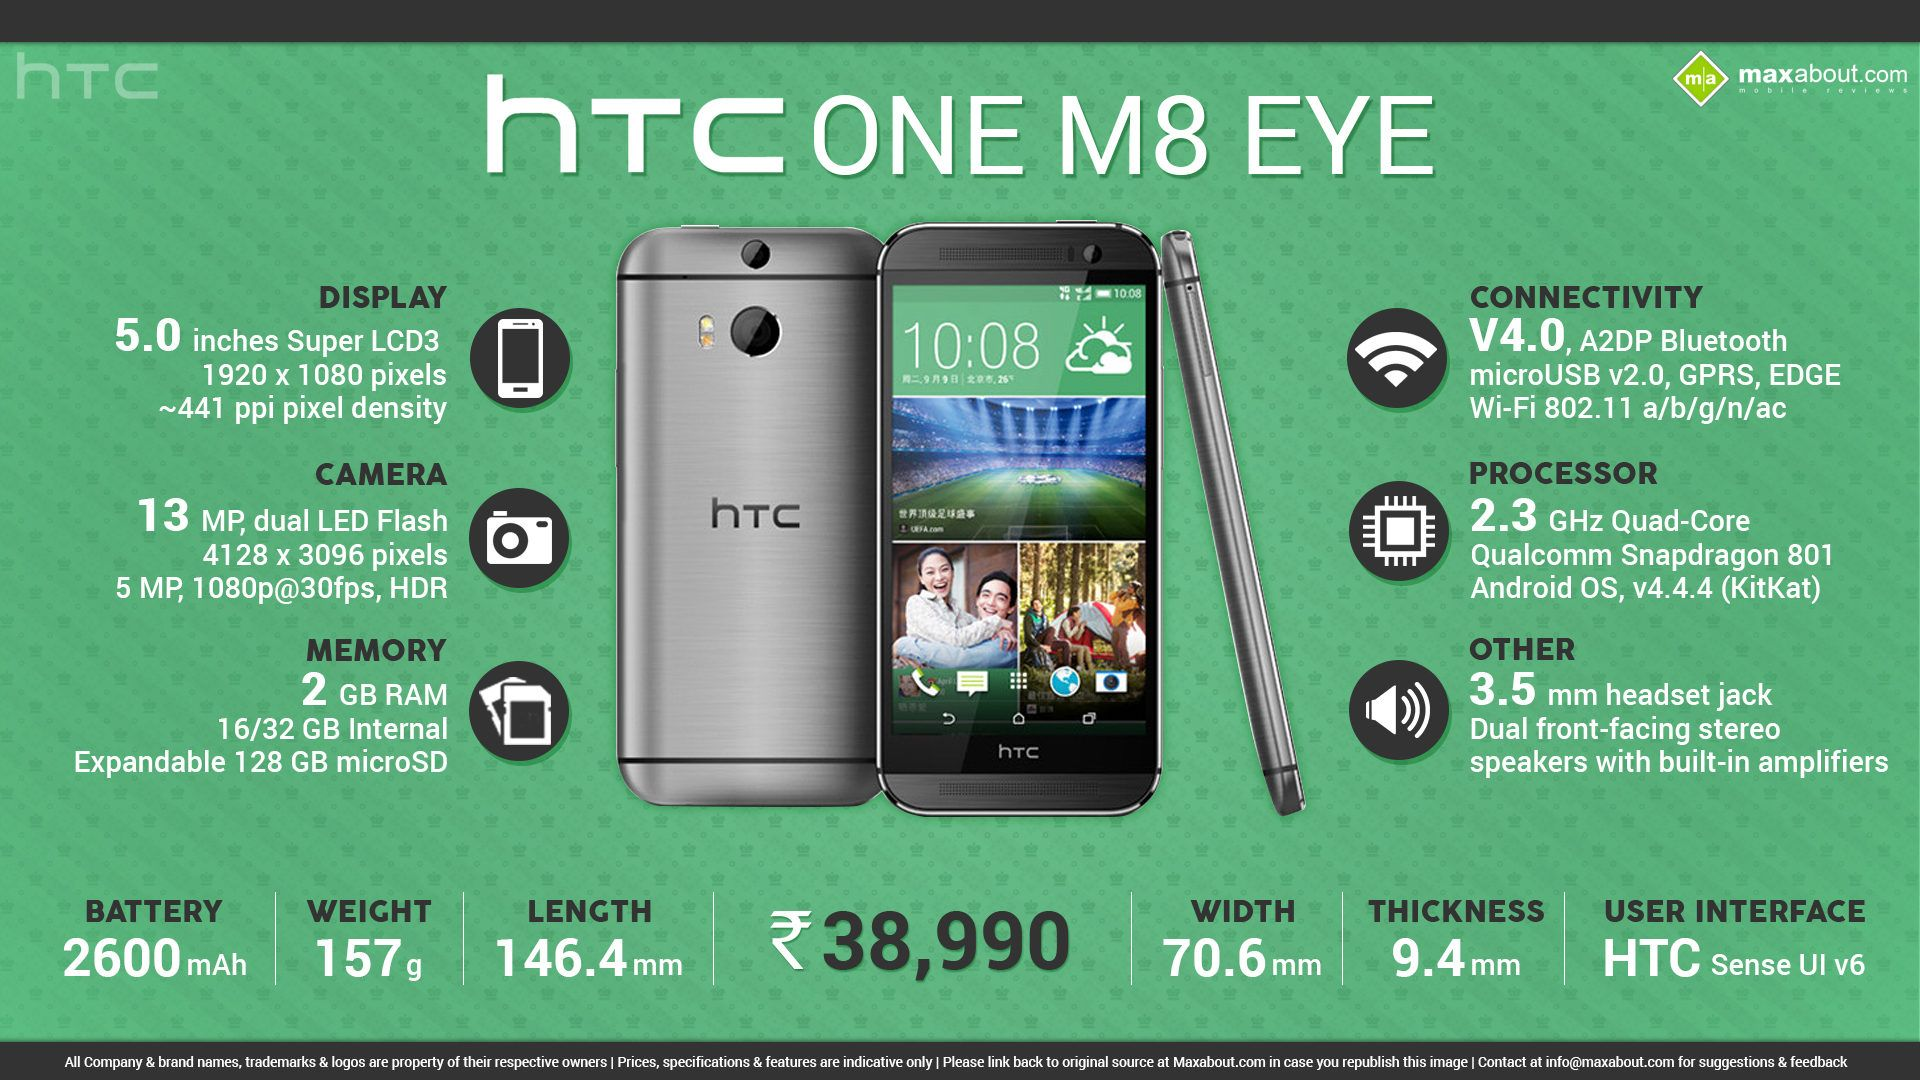 HTC-One-M8-EYE | Smartphone